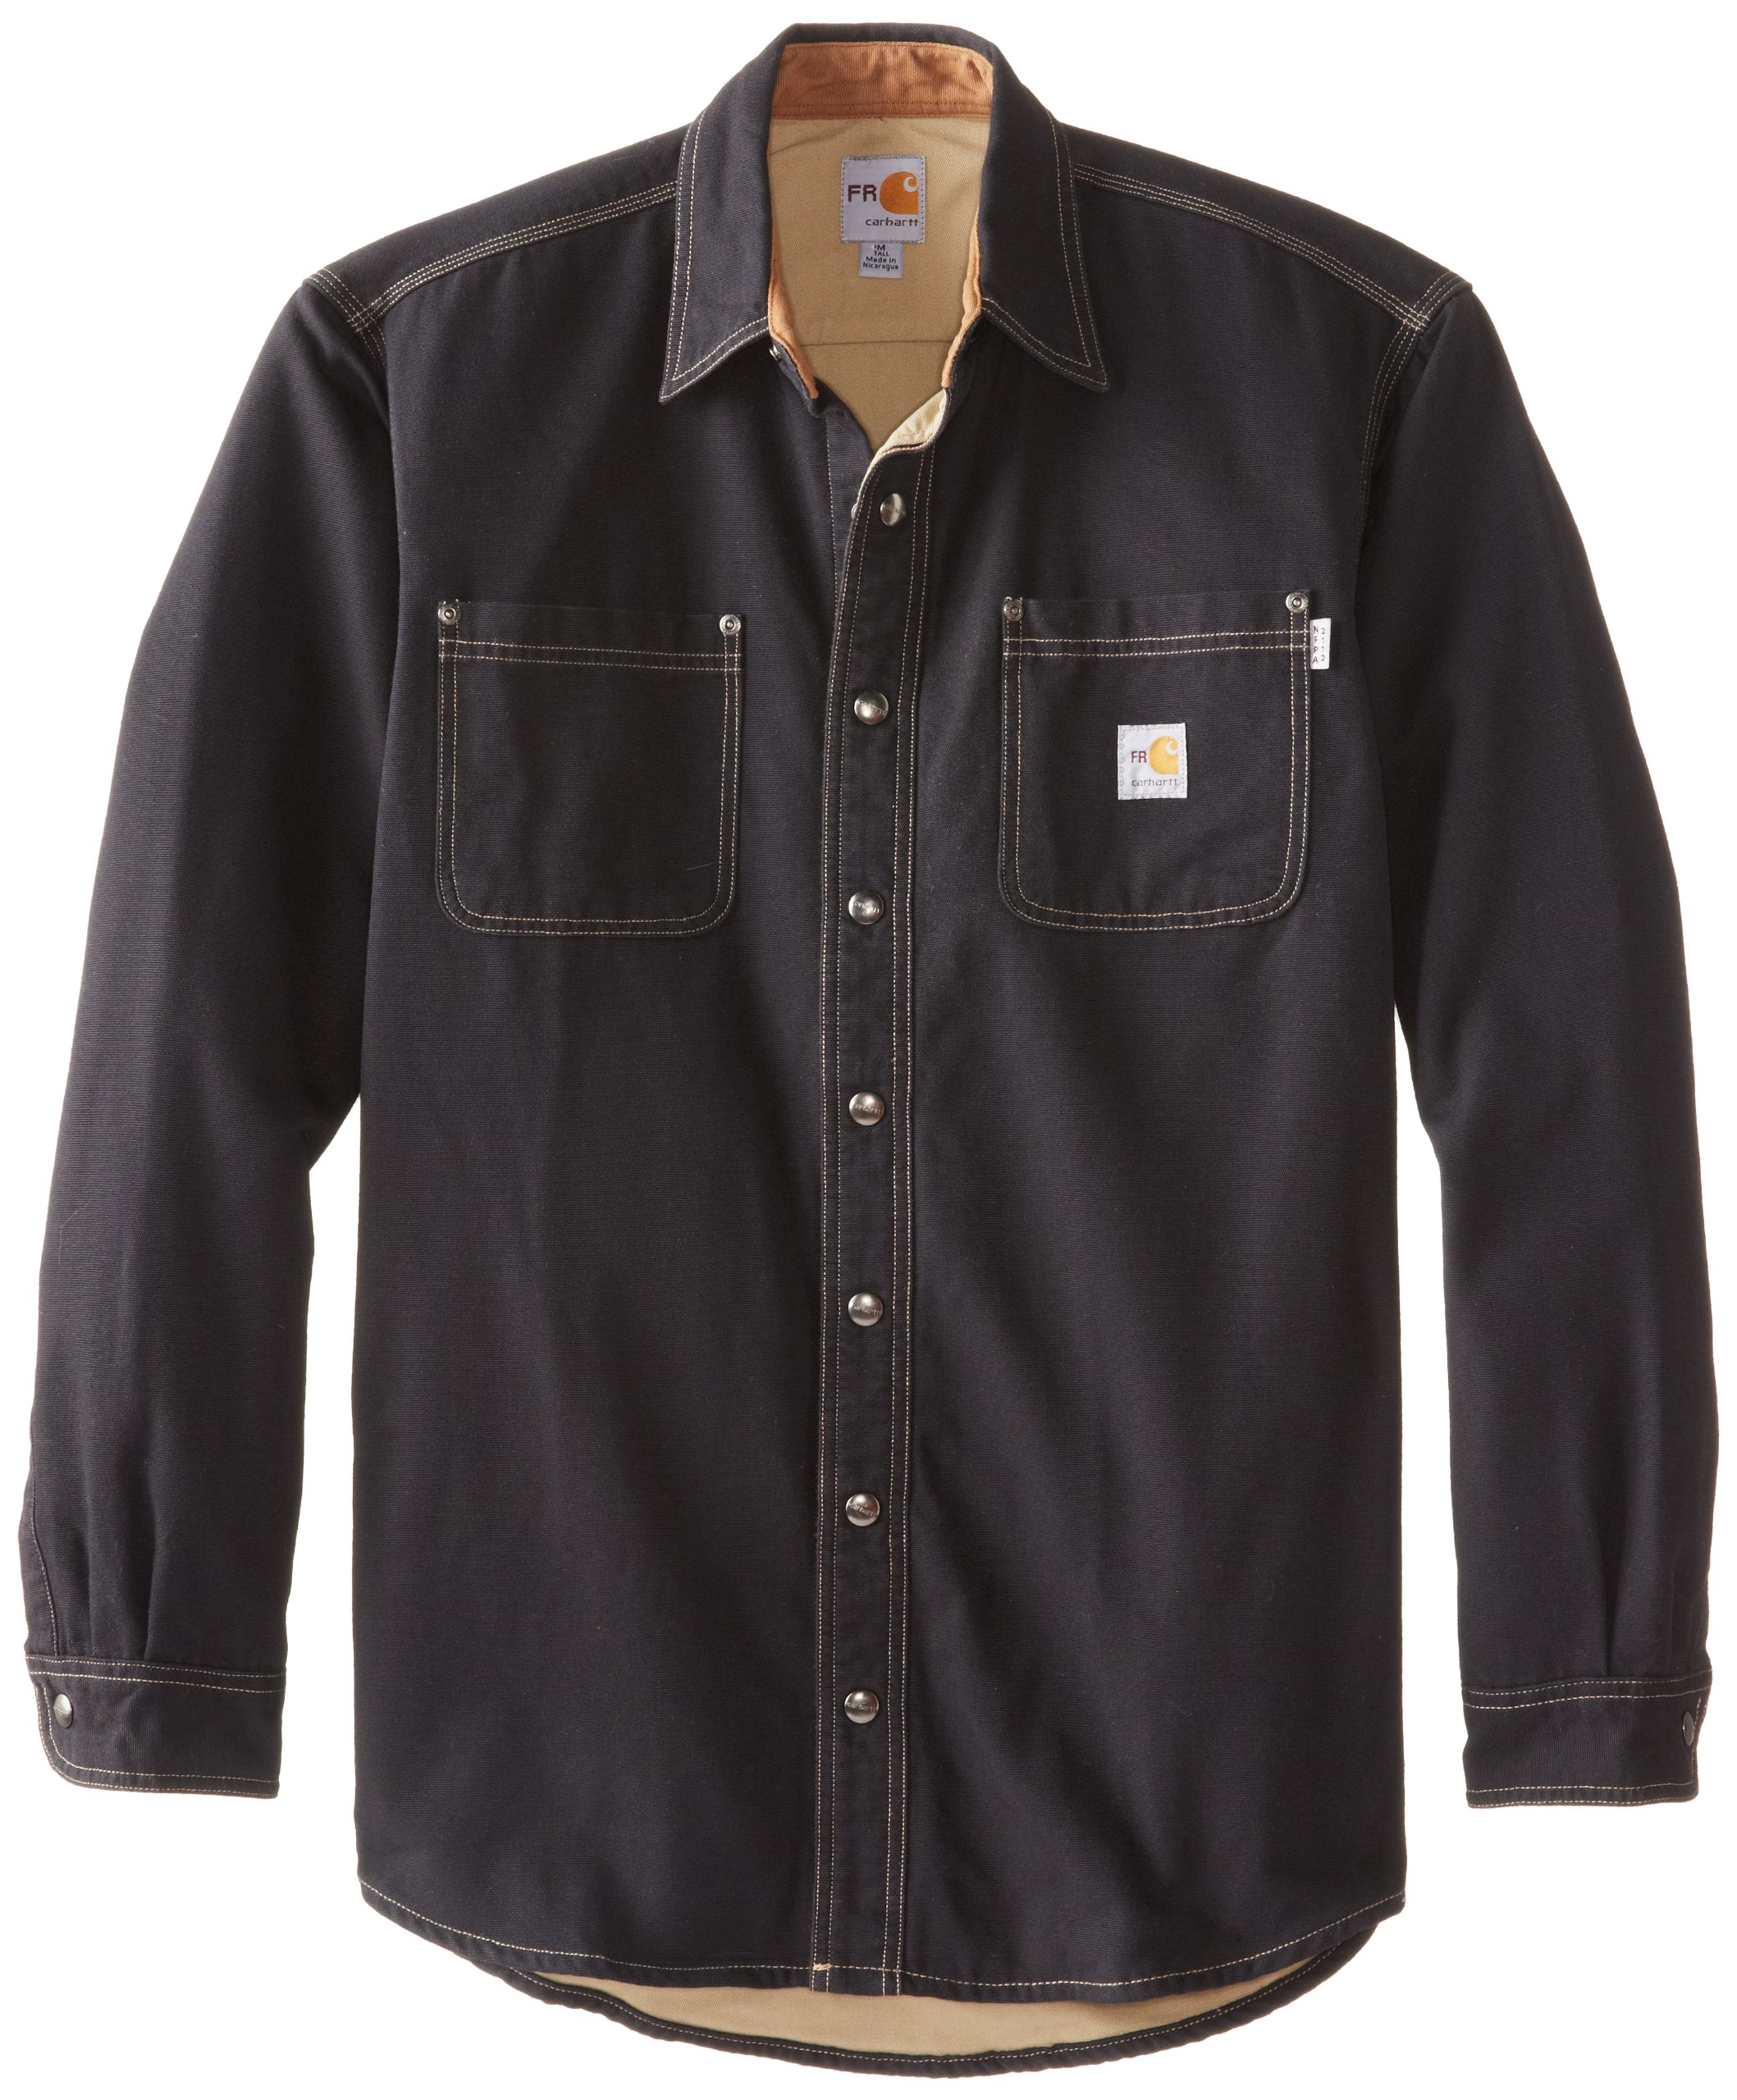 Carhartt Men's Big & Tall Flame Resistant Canvas Shirt Jacket,Black,XXXX-Large Tall